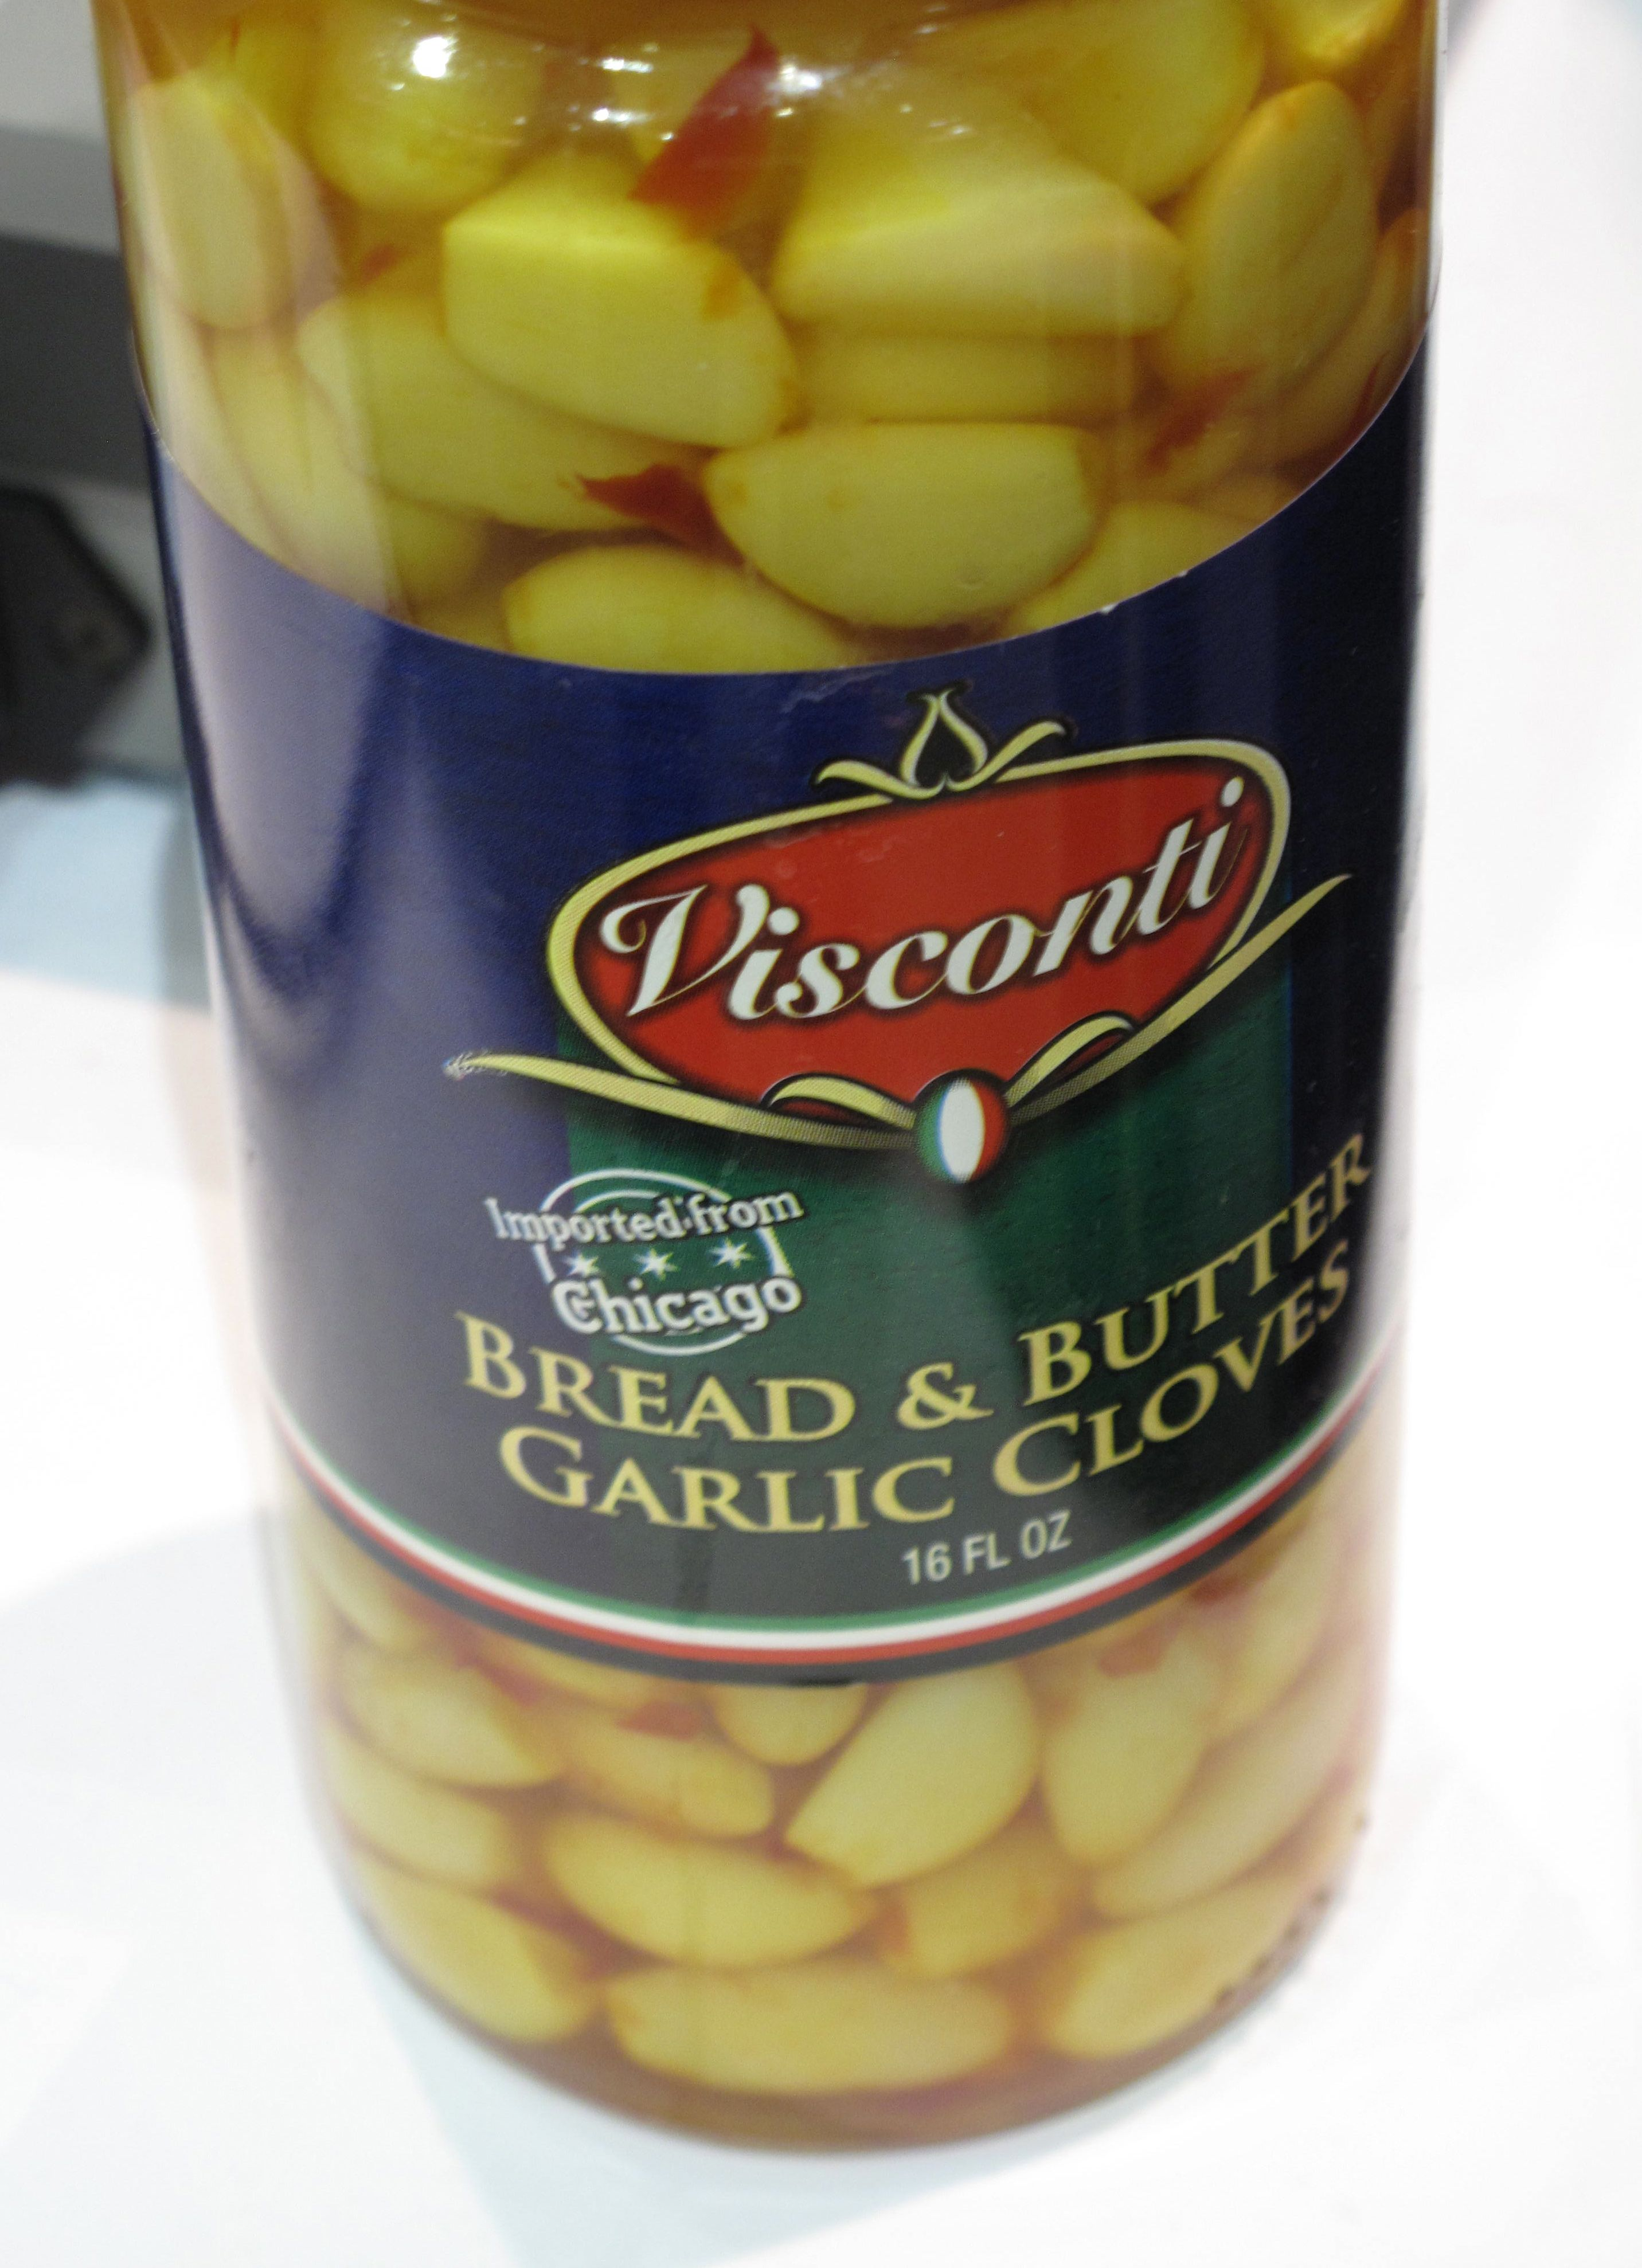 Bread and Butter Garlic